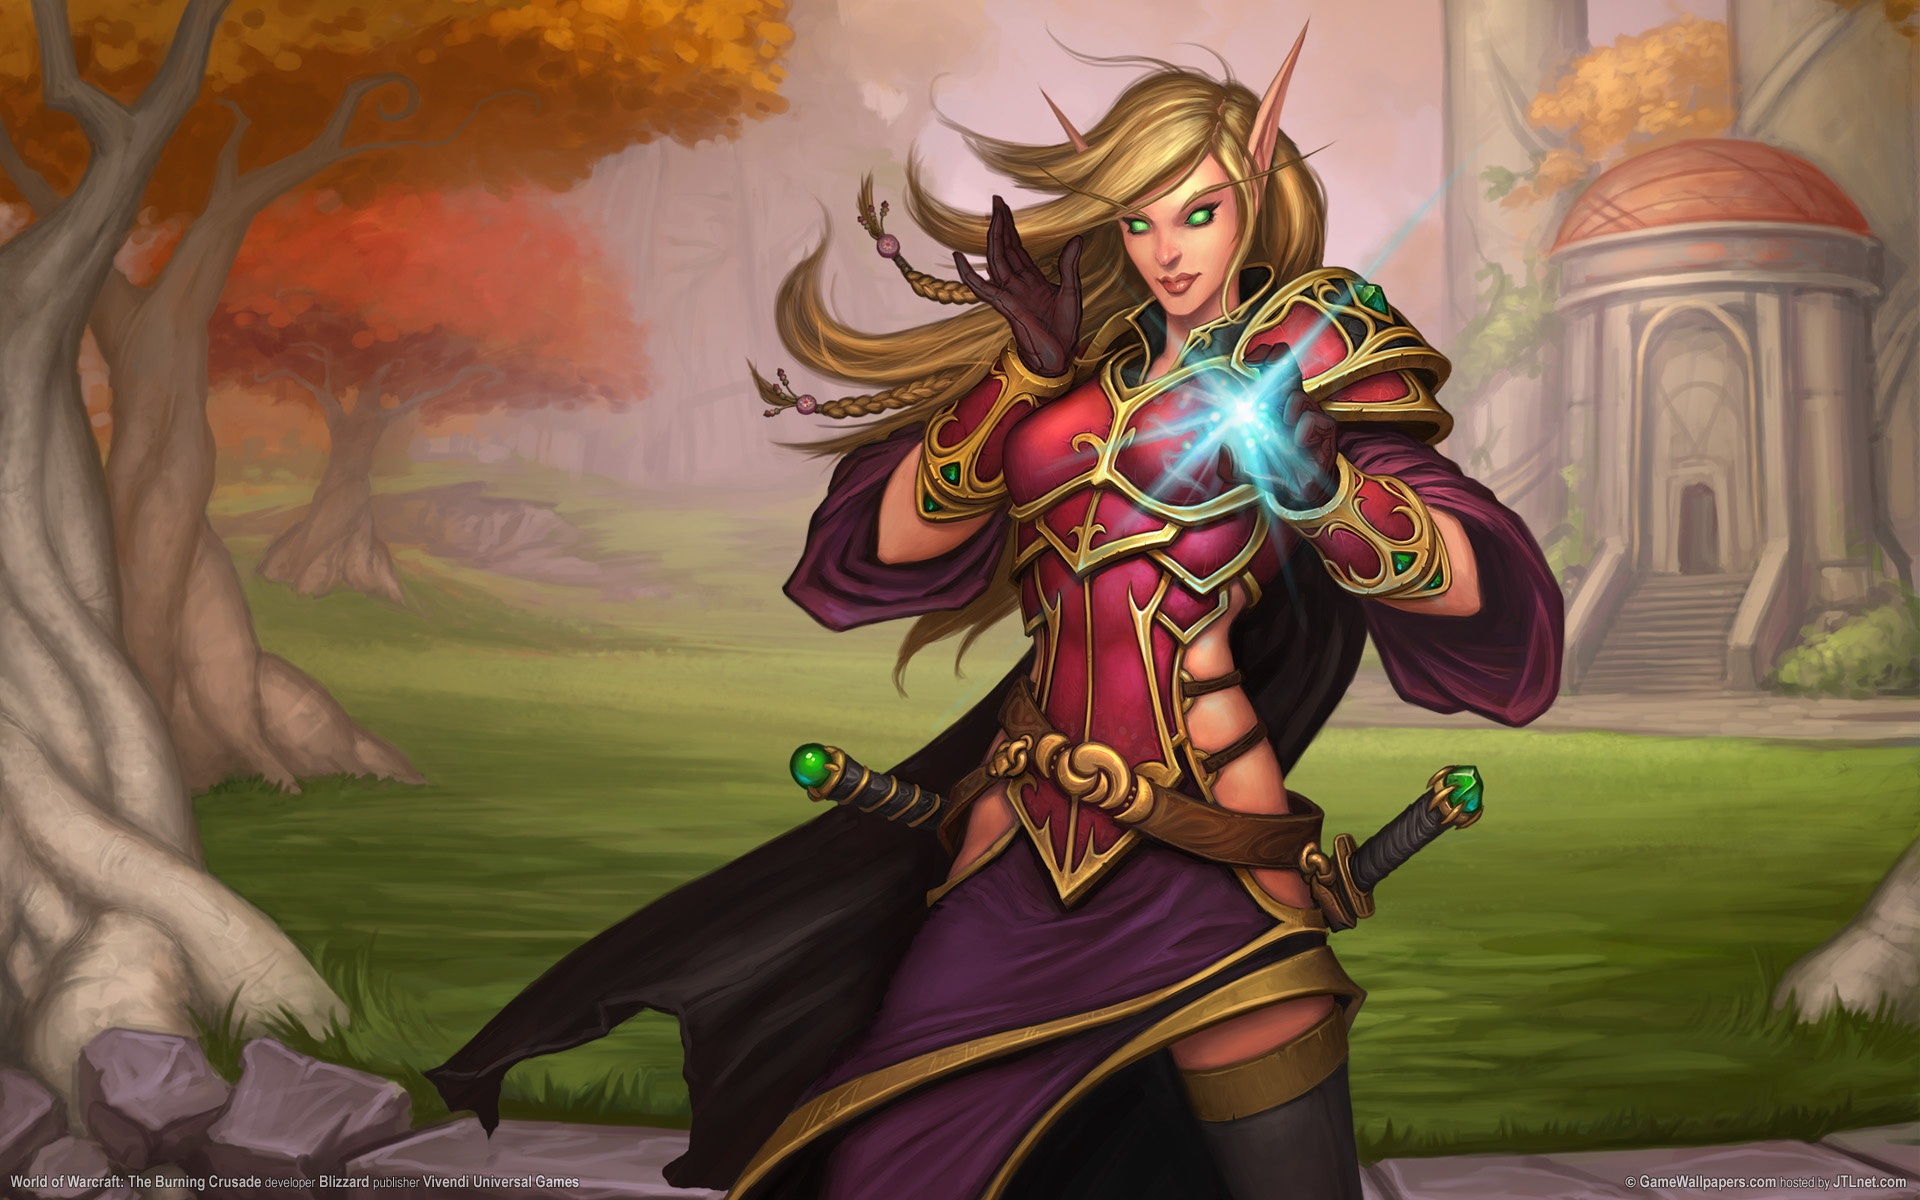 World Of Warcraft Wallpapers, Pictures, Images